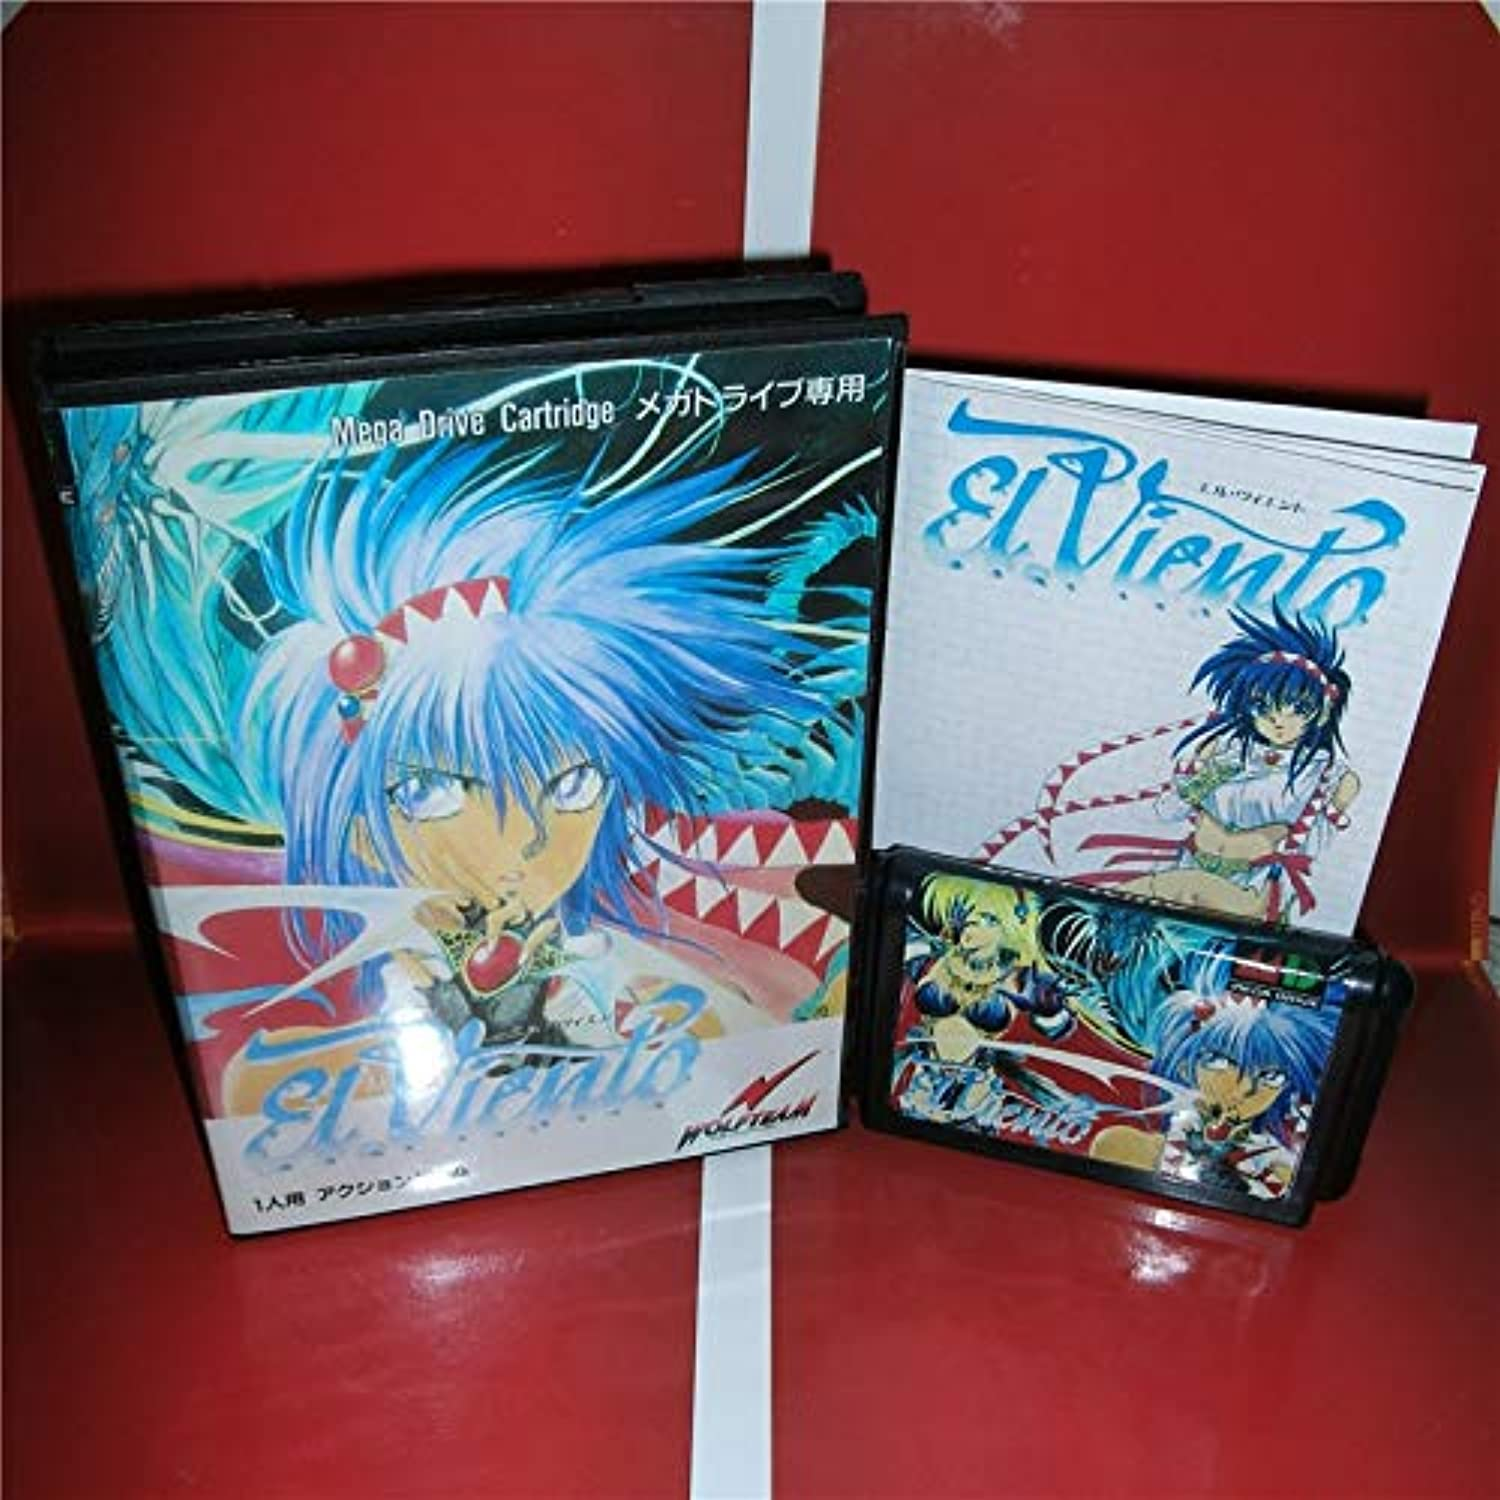 Value-Smart-ToysEL Viento Japan Cover with Box and Manual for Sega MegaDrive Genesis Video Game Console 16 bit MD Card